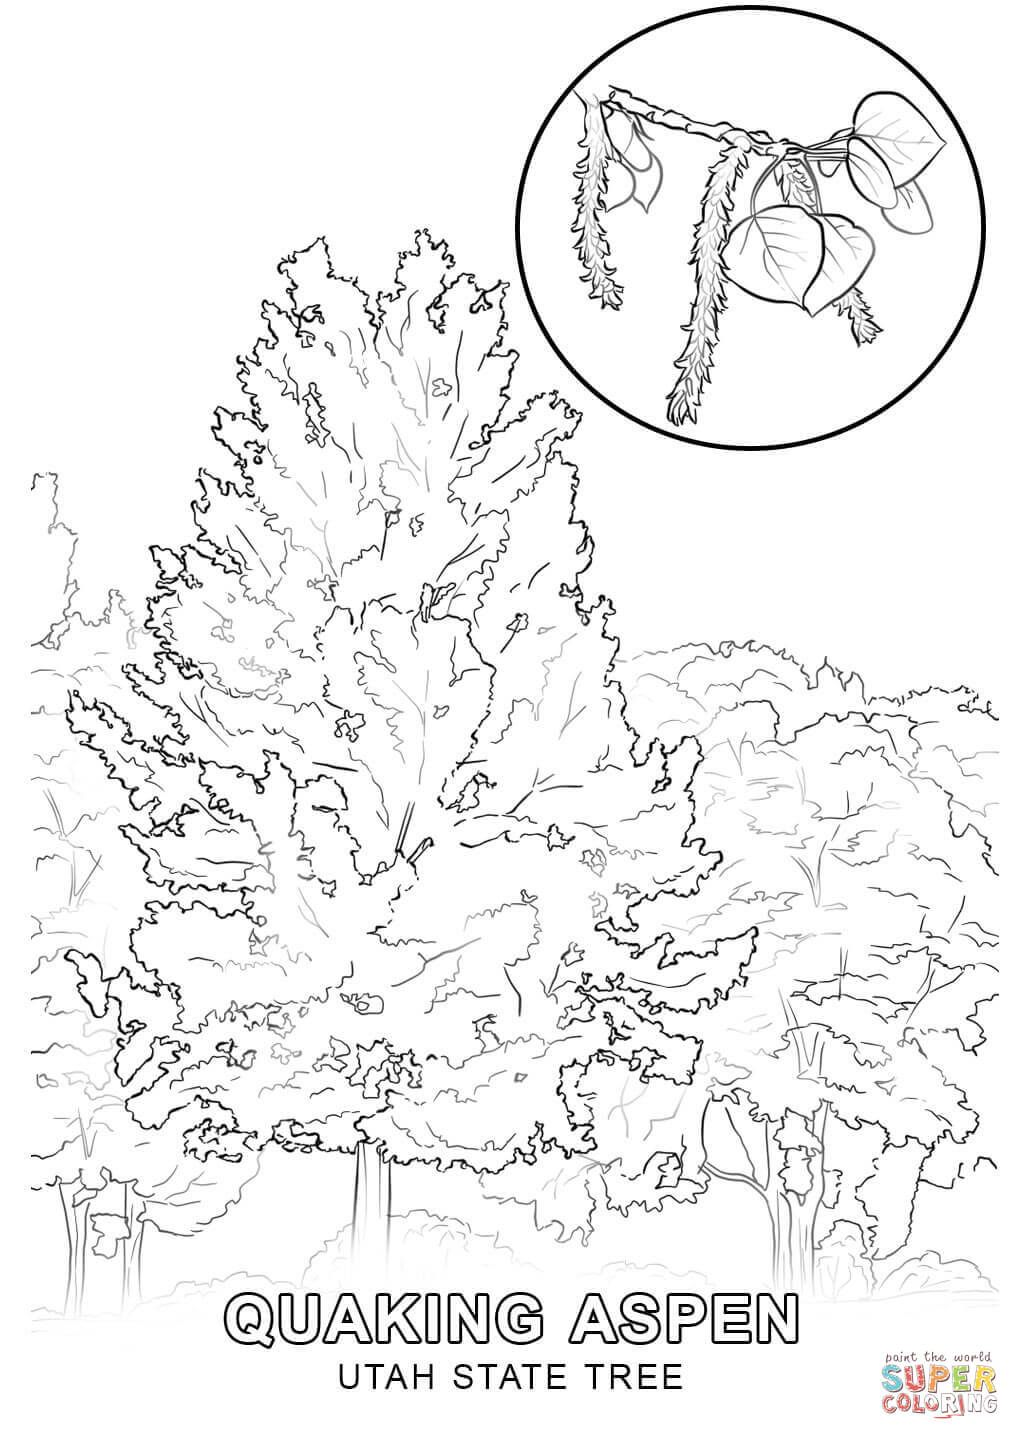 Click The Utah State Tree Coloring Pages To View Printable Version Or Color It Online Compatible Wit Tree Coloring Page Coloring Pages Abstract Coloring Pages